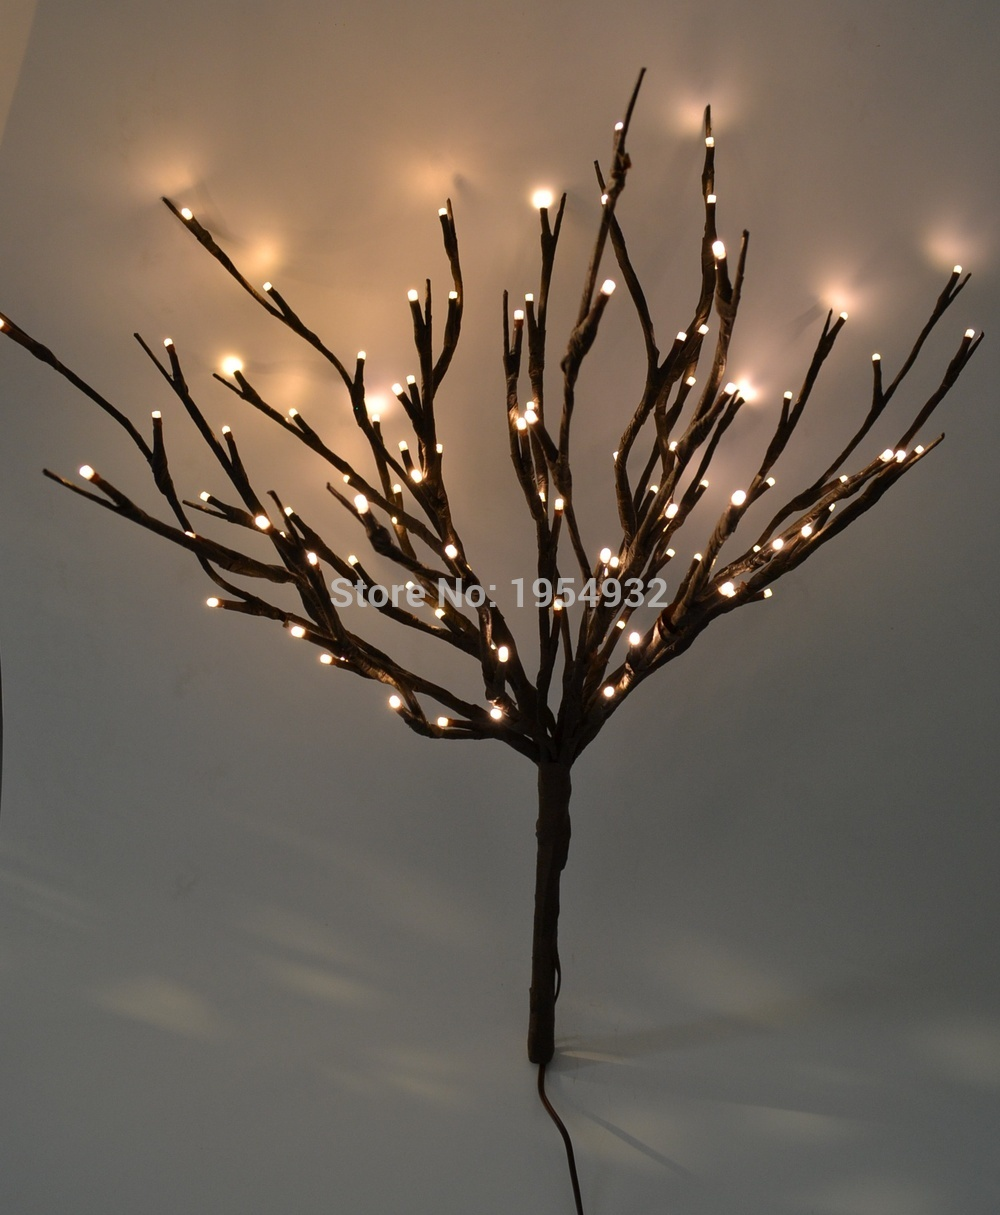 Led Lighted Twig Branches 100 Pre Light Branch Artificial Tree Willow Lamp For Home Holiday Party Decoration In Dried